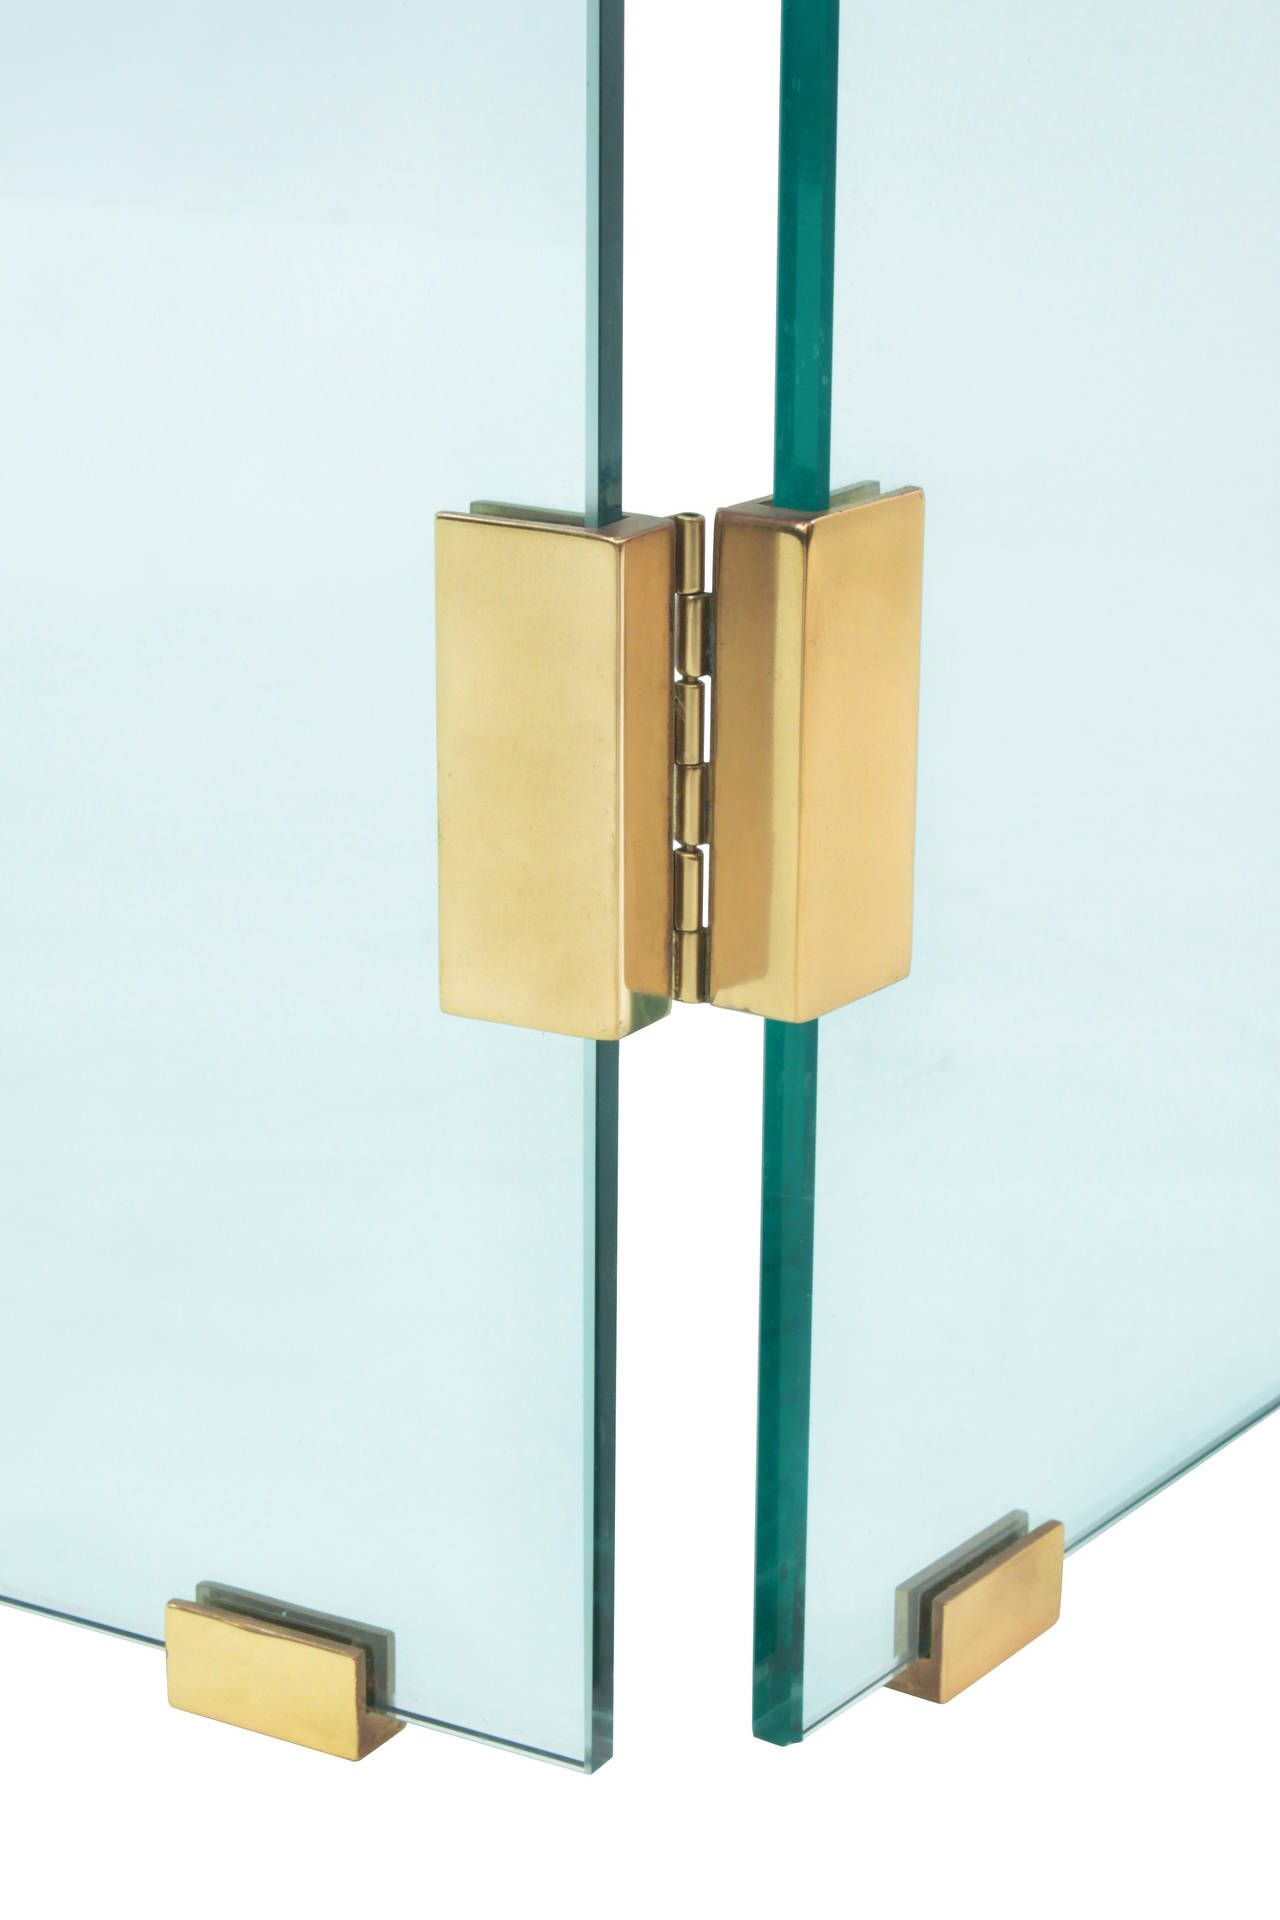 glass fireplace screen with brass hinges by danny alessandro